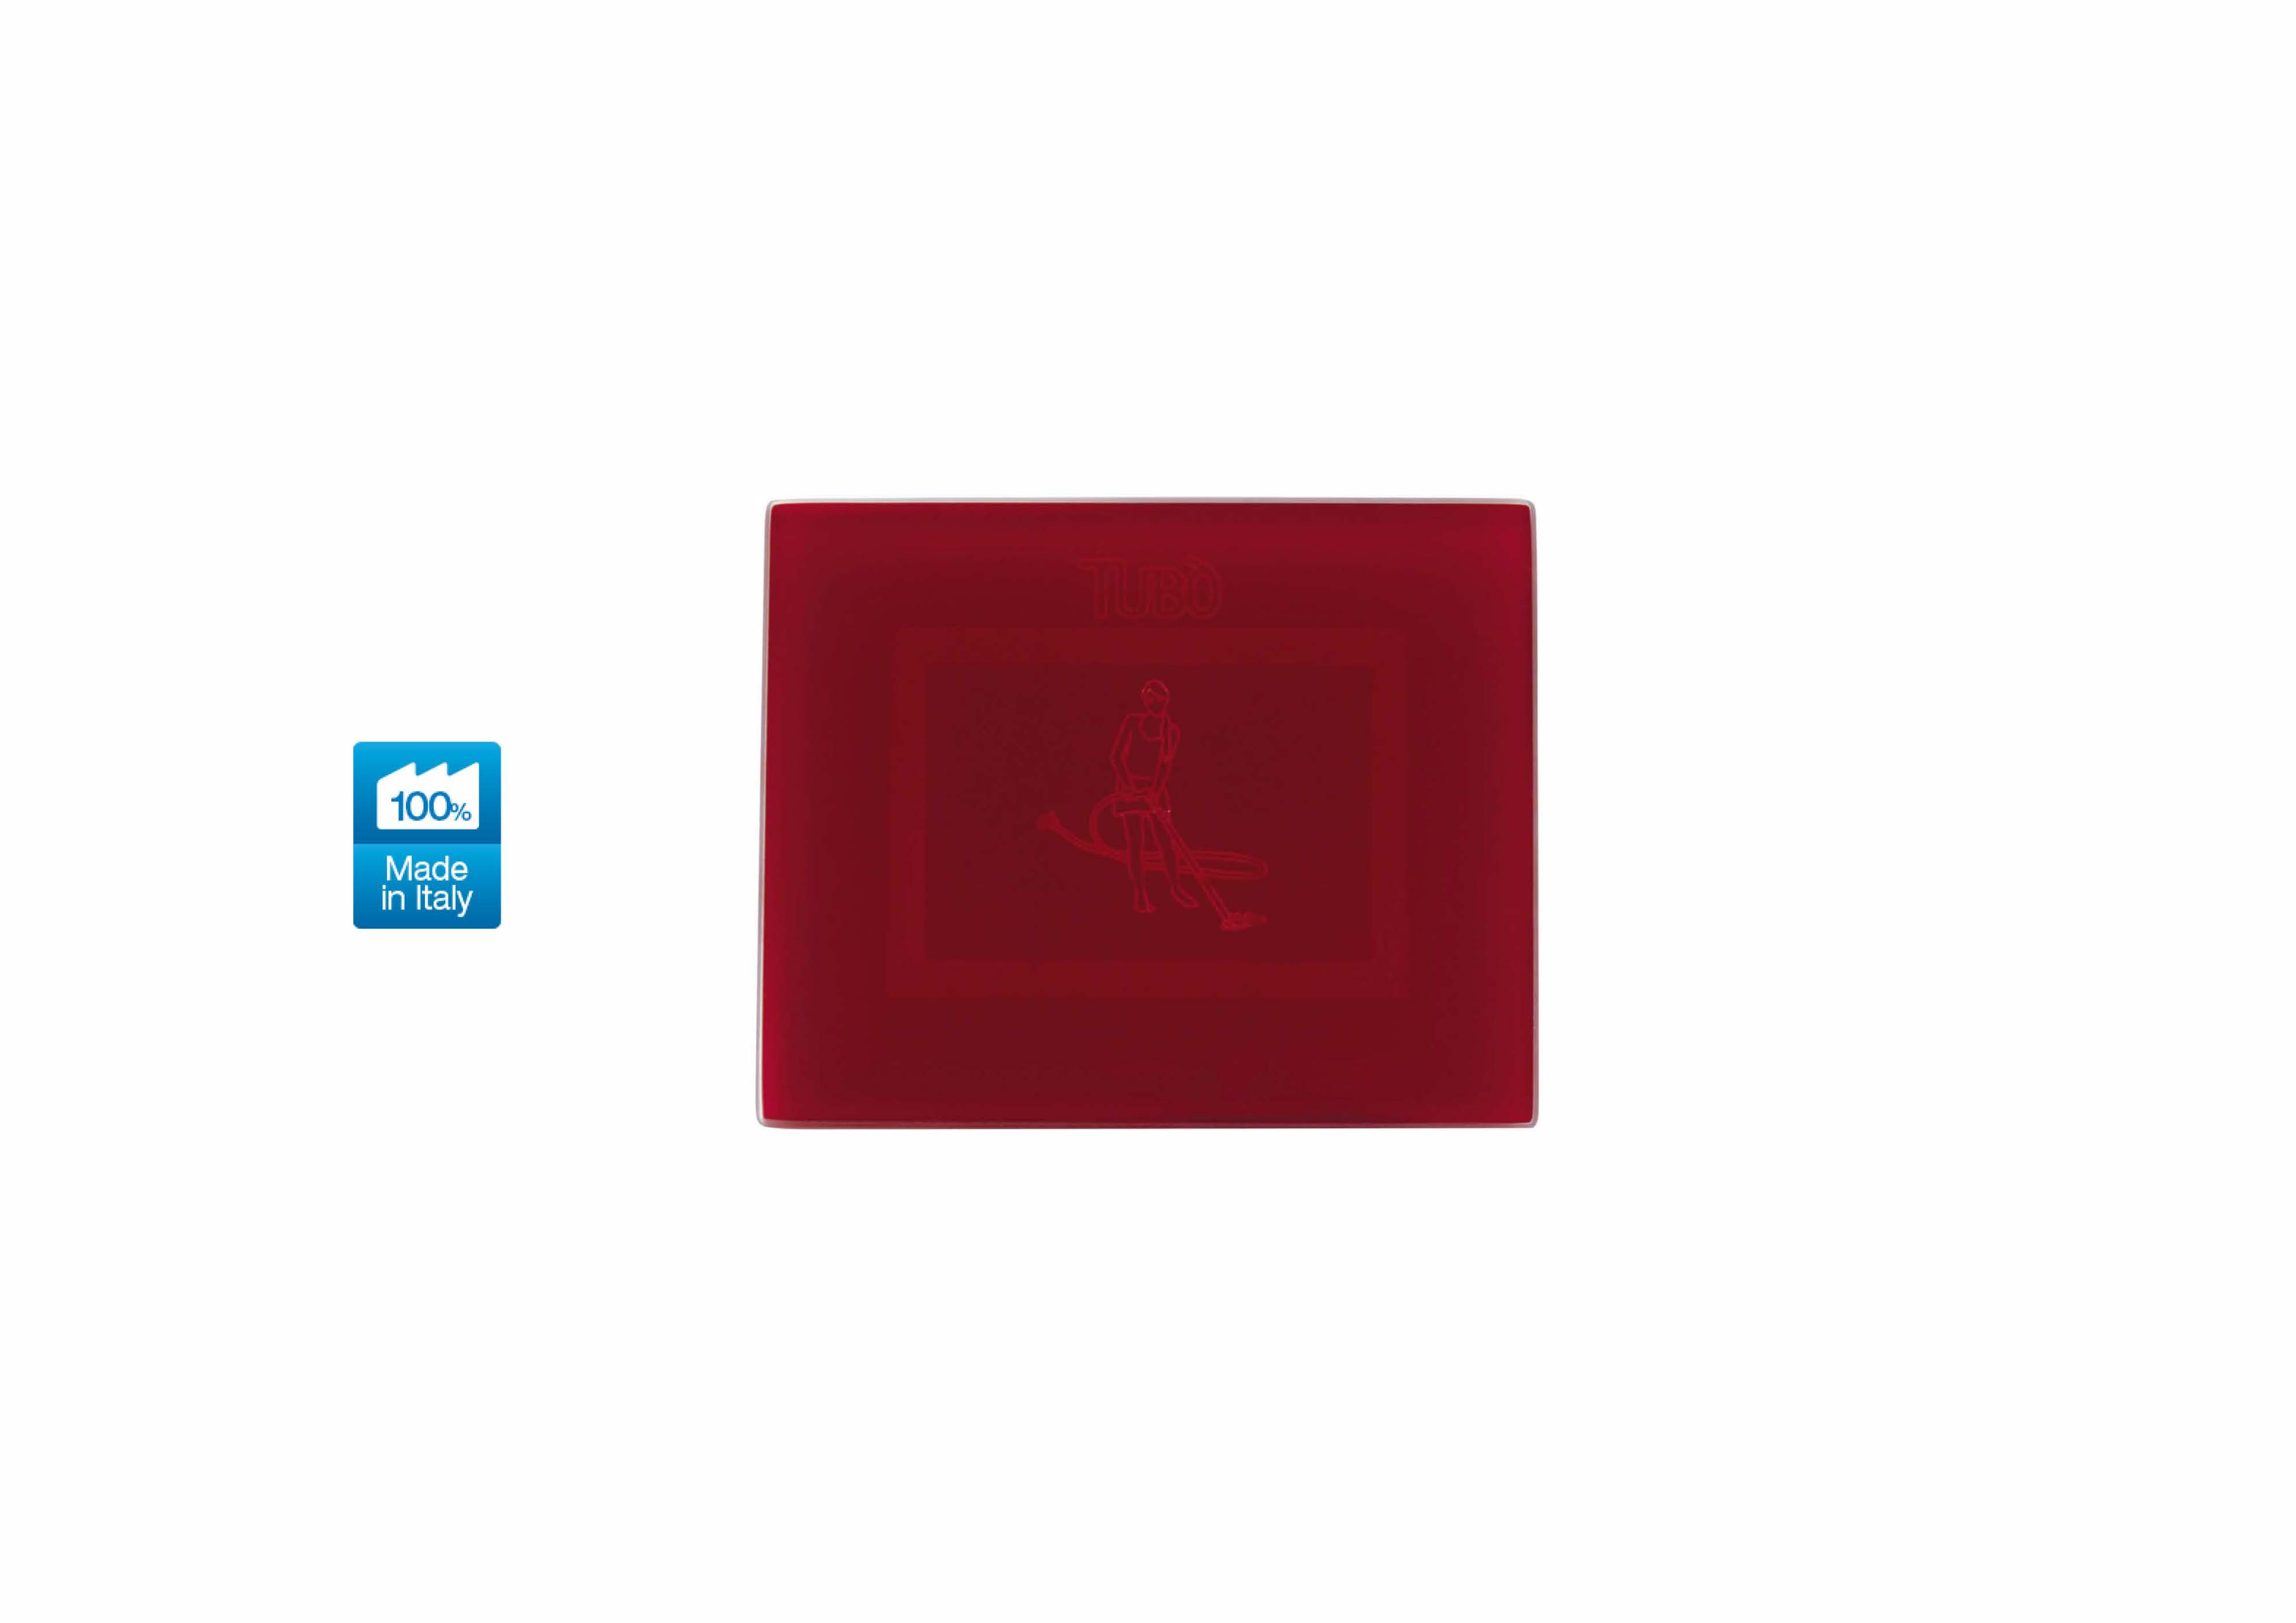 Вакуумна розетка TUBO New Air Touch, Ave Systema 44 Pompei red